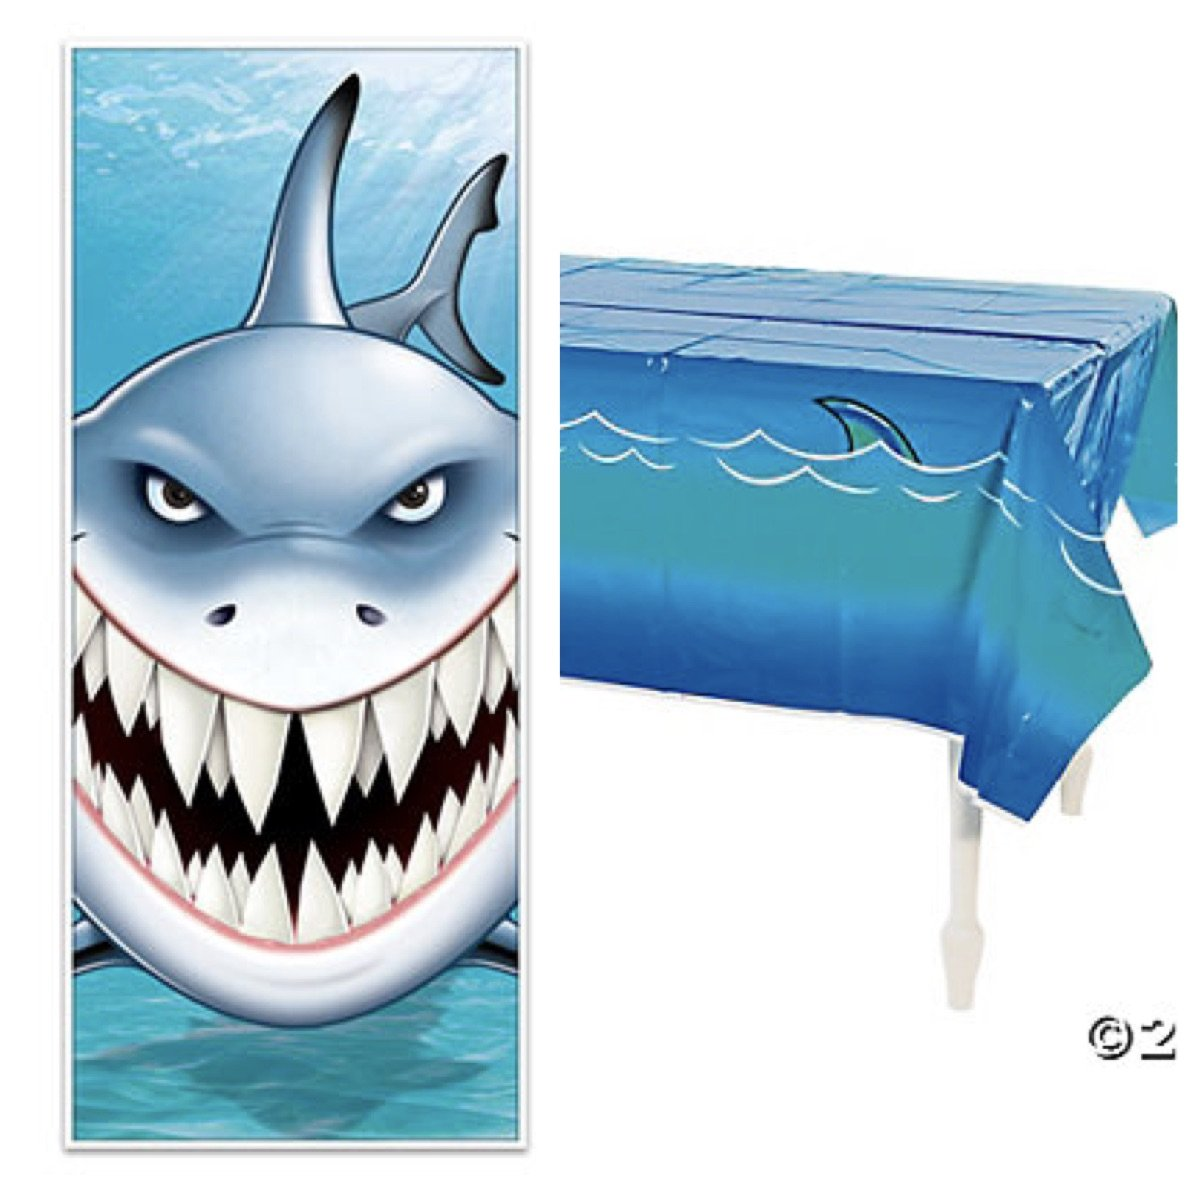 "Just4fun Awesome Shark Party Decorations - 6' Door Cover Banner & 54"" X 108"" Plastic Tablecloth - Shark Decor Parties Week Tank Ocean Life"